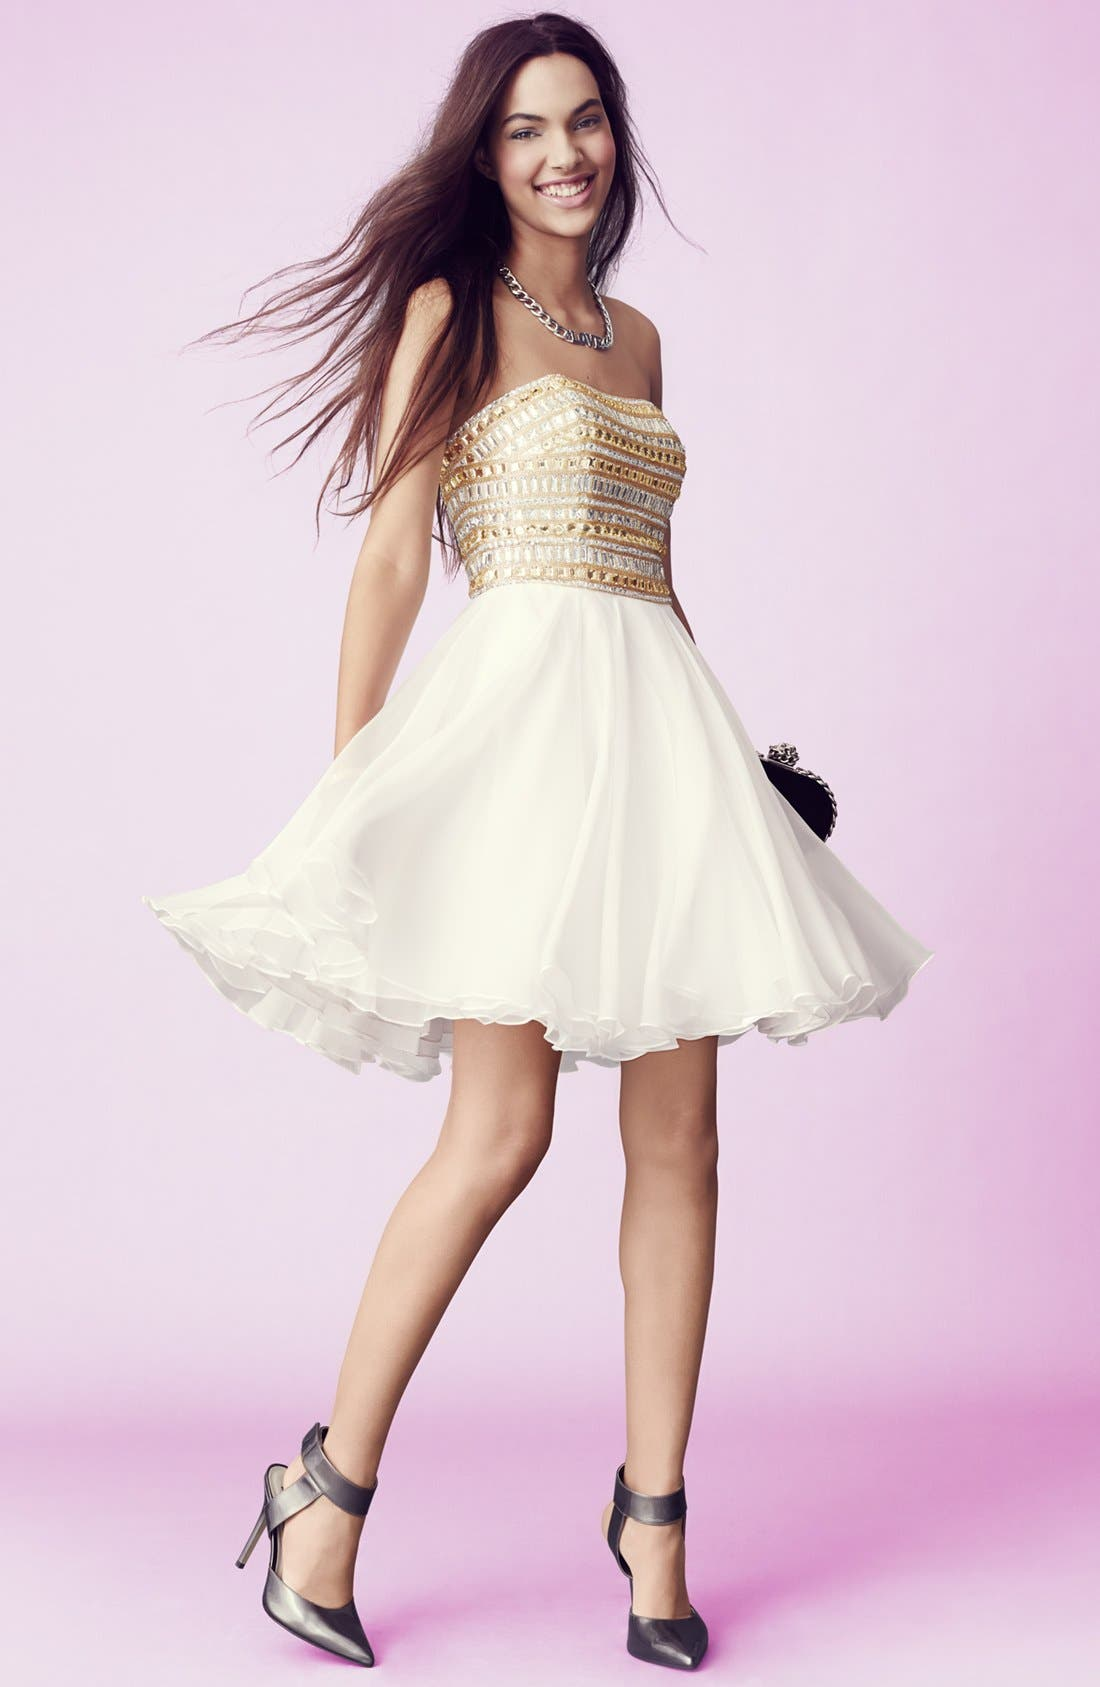 Alternate Image 1 Selected - Sherri Hill Party Dress & Accessories